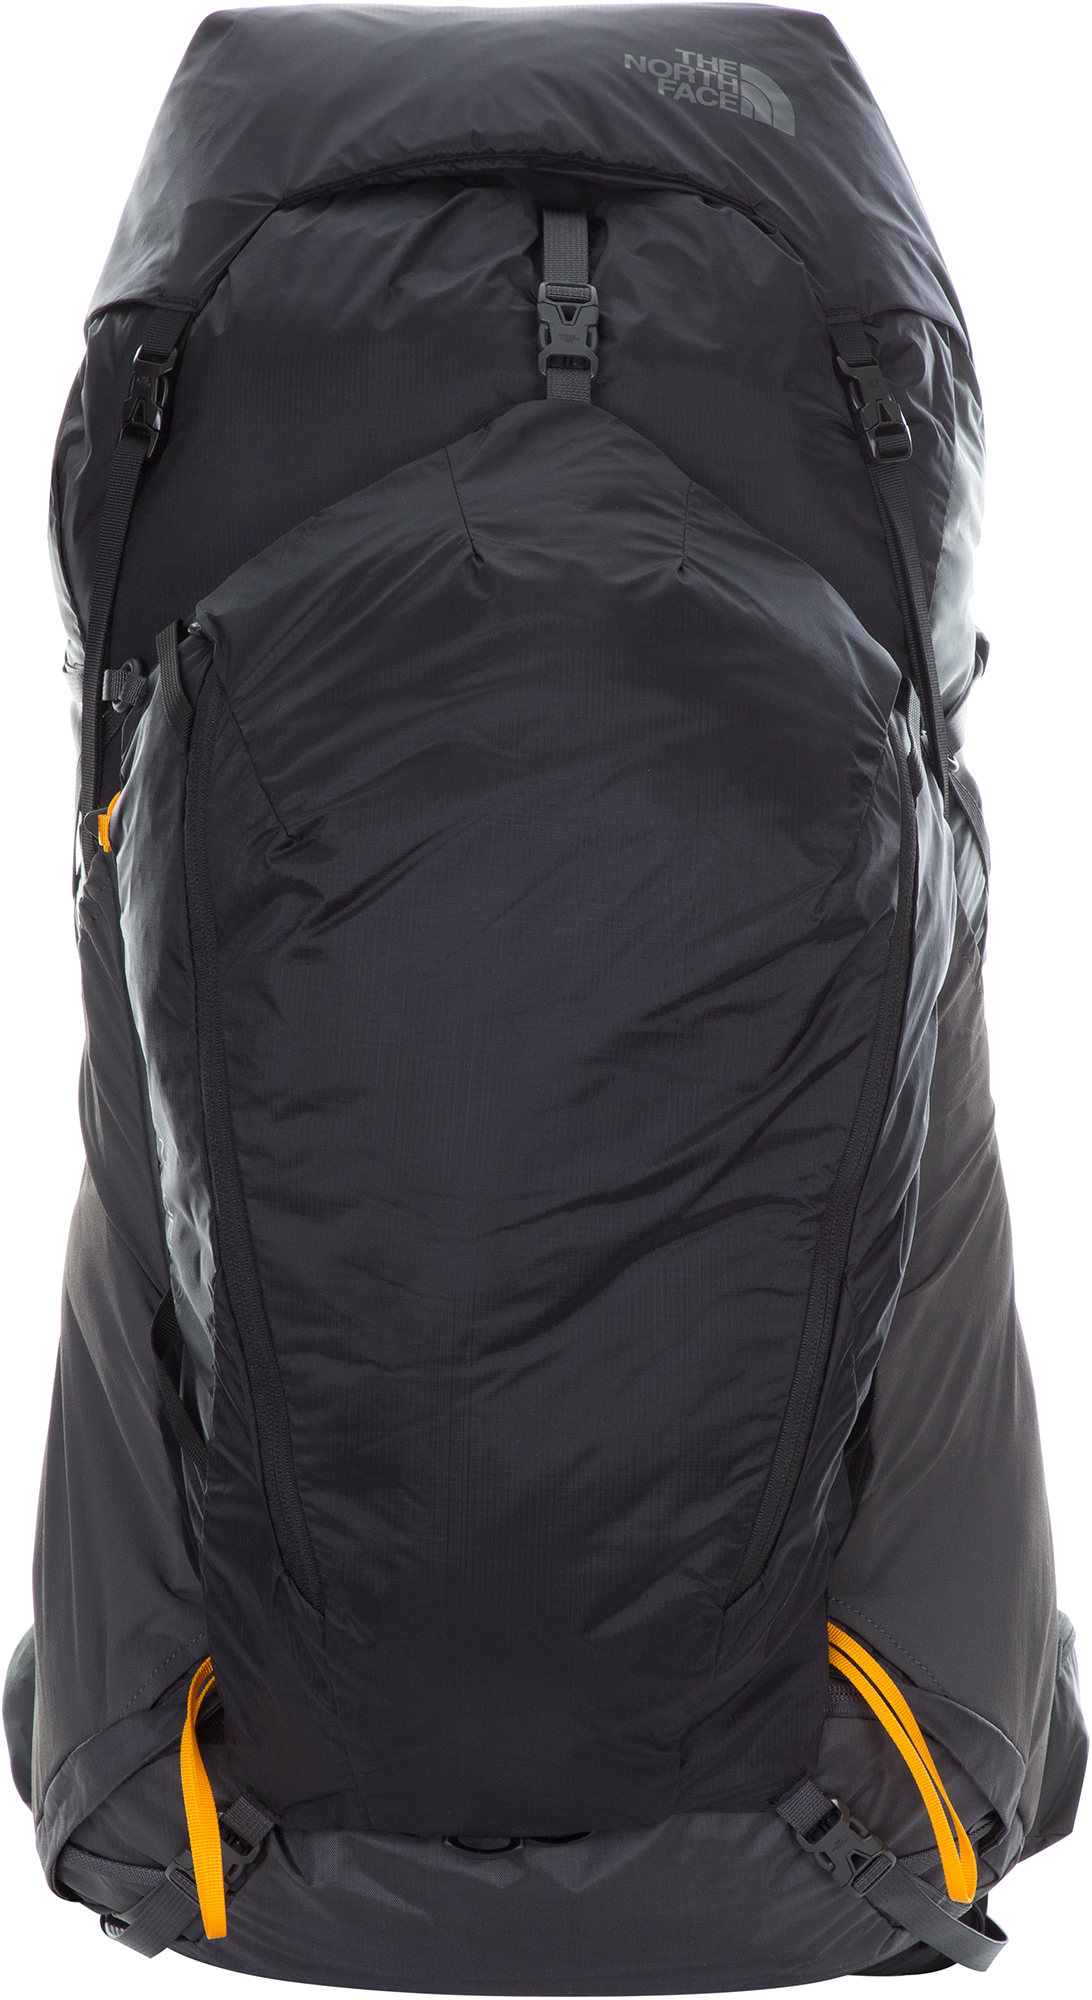 The North Face The North Face Banchee 65